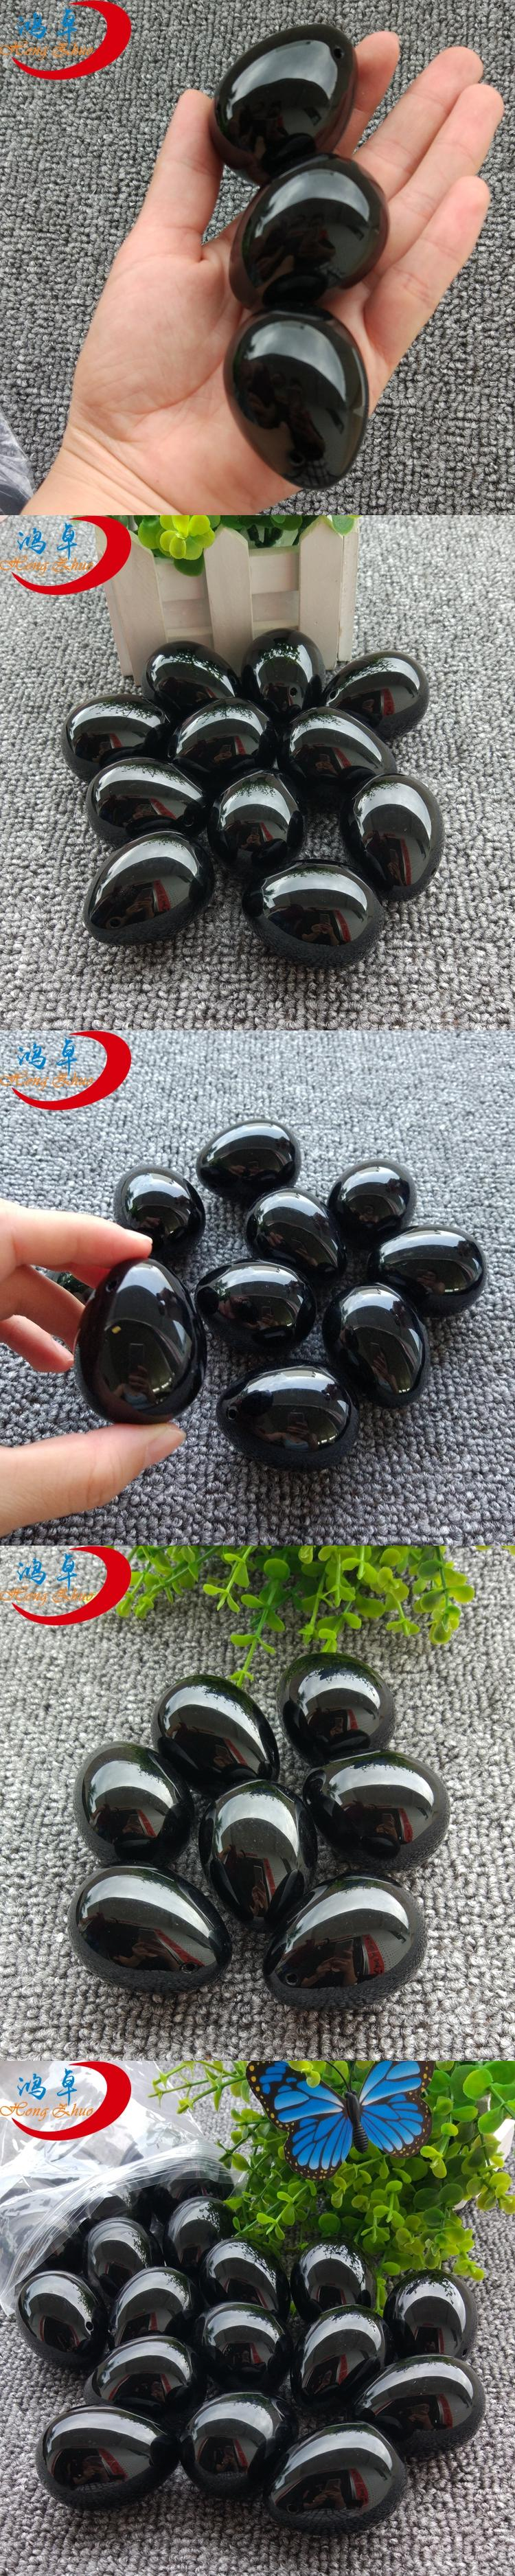 Hot sale factory direct gemstone jade yoni eggs for vaginal Drilled High quality